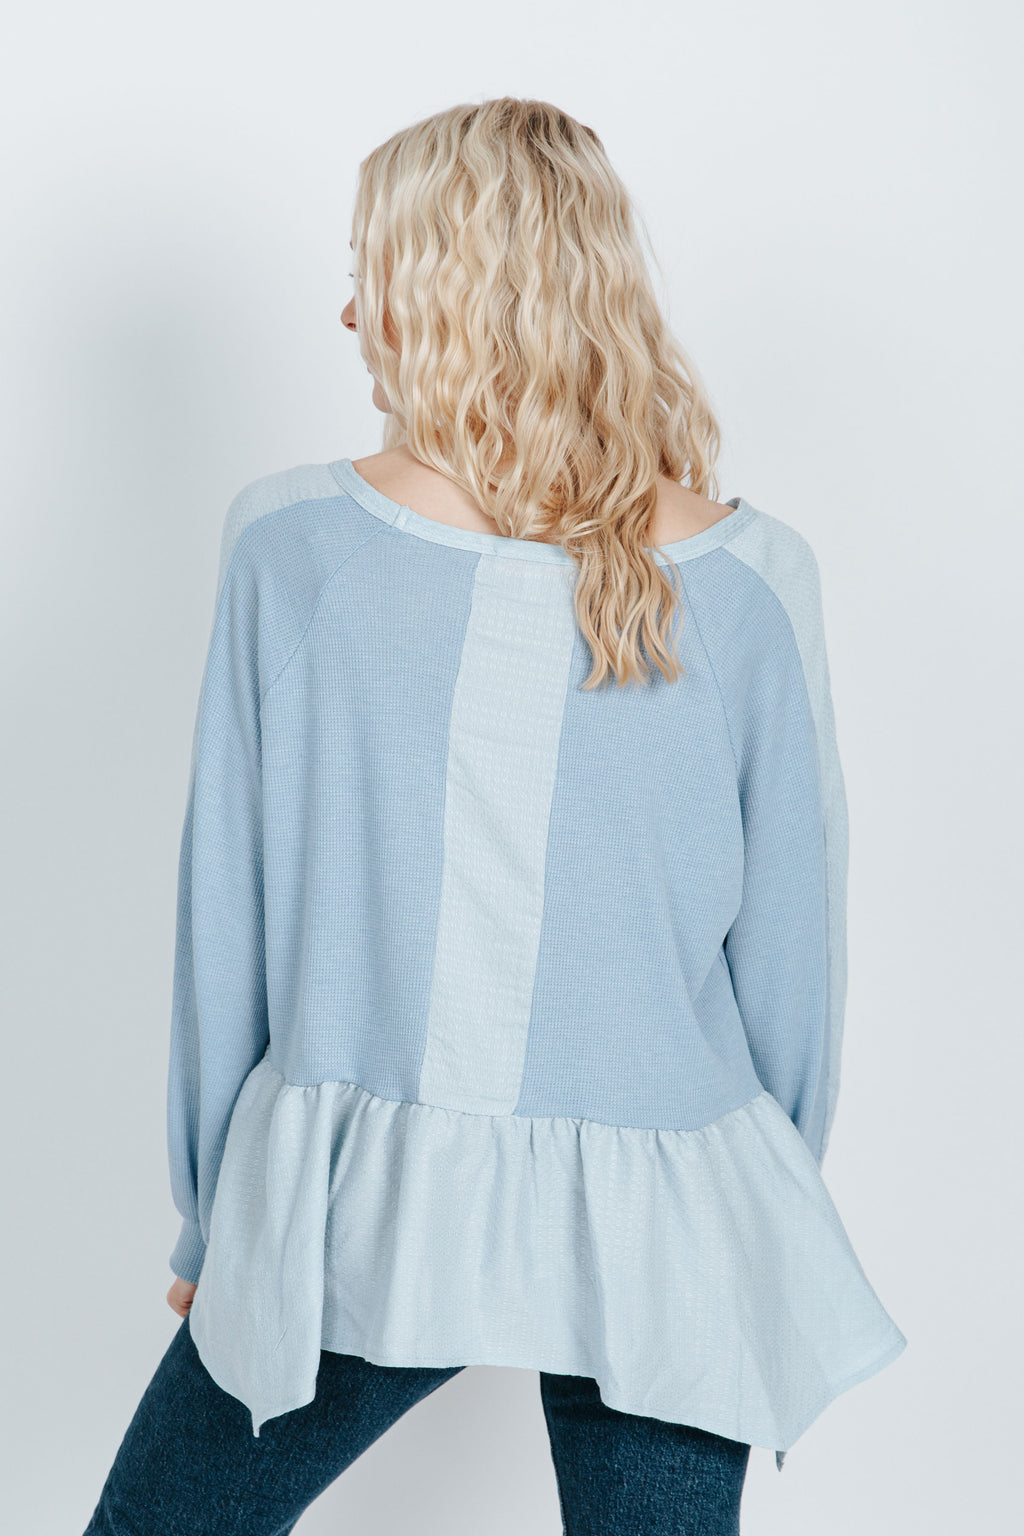 The Clive Peplum Blouse in Light Blue